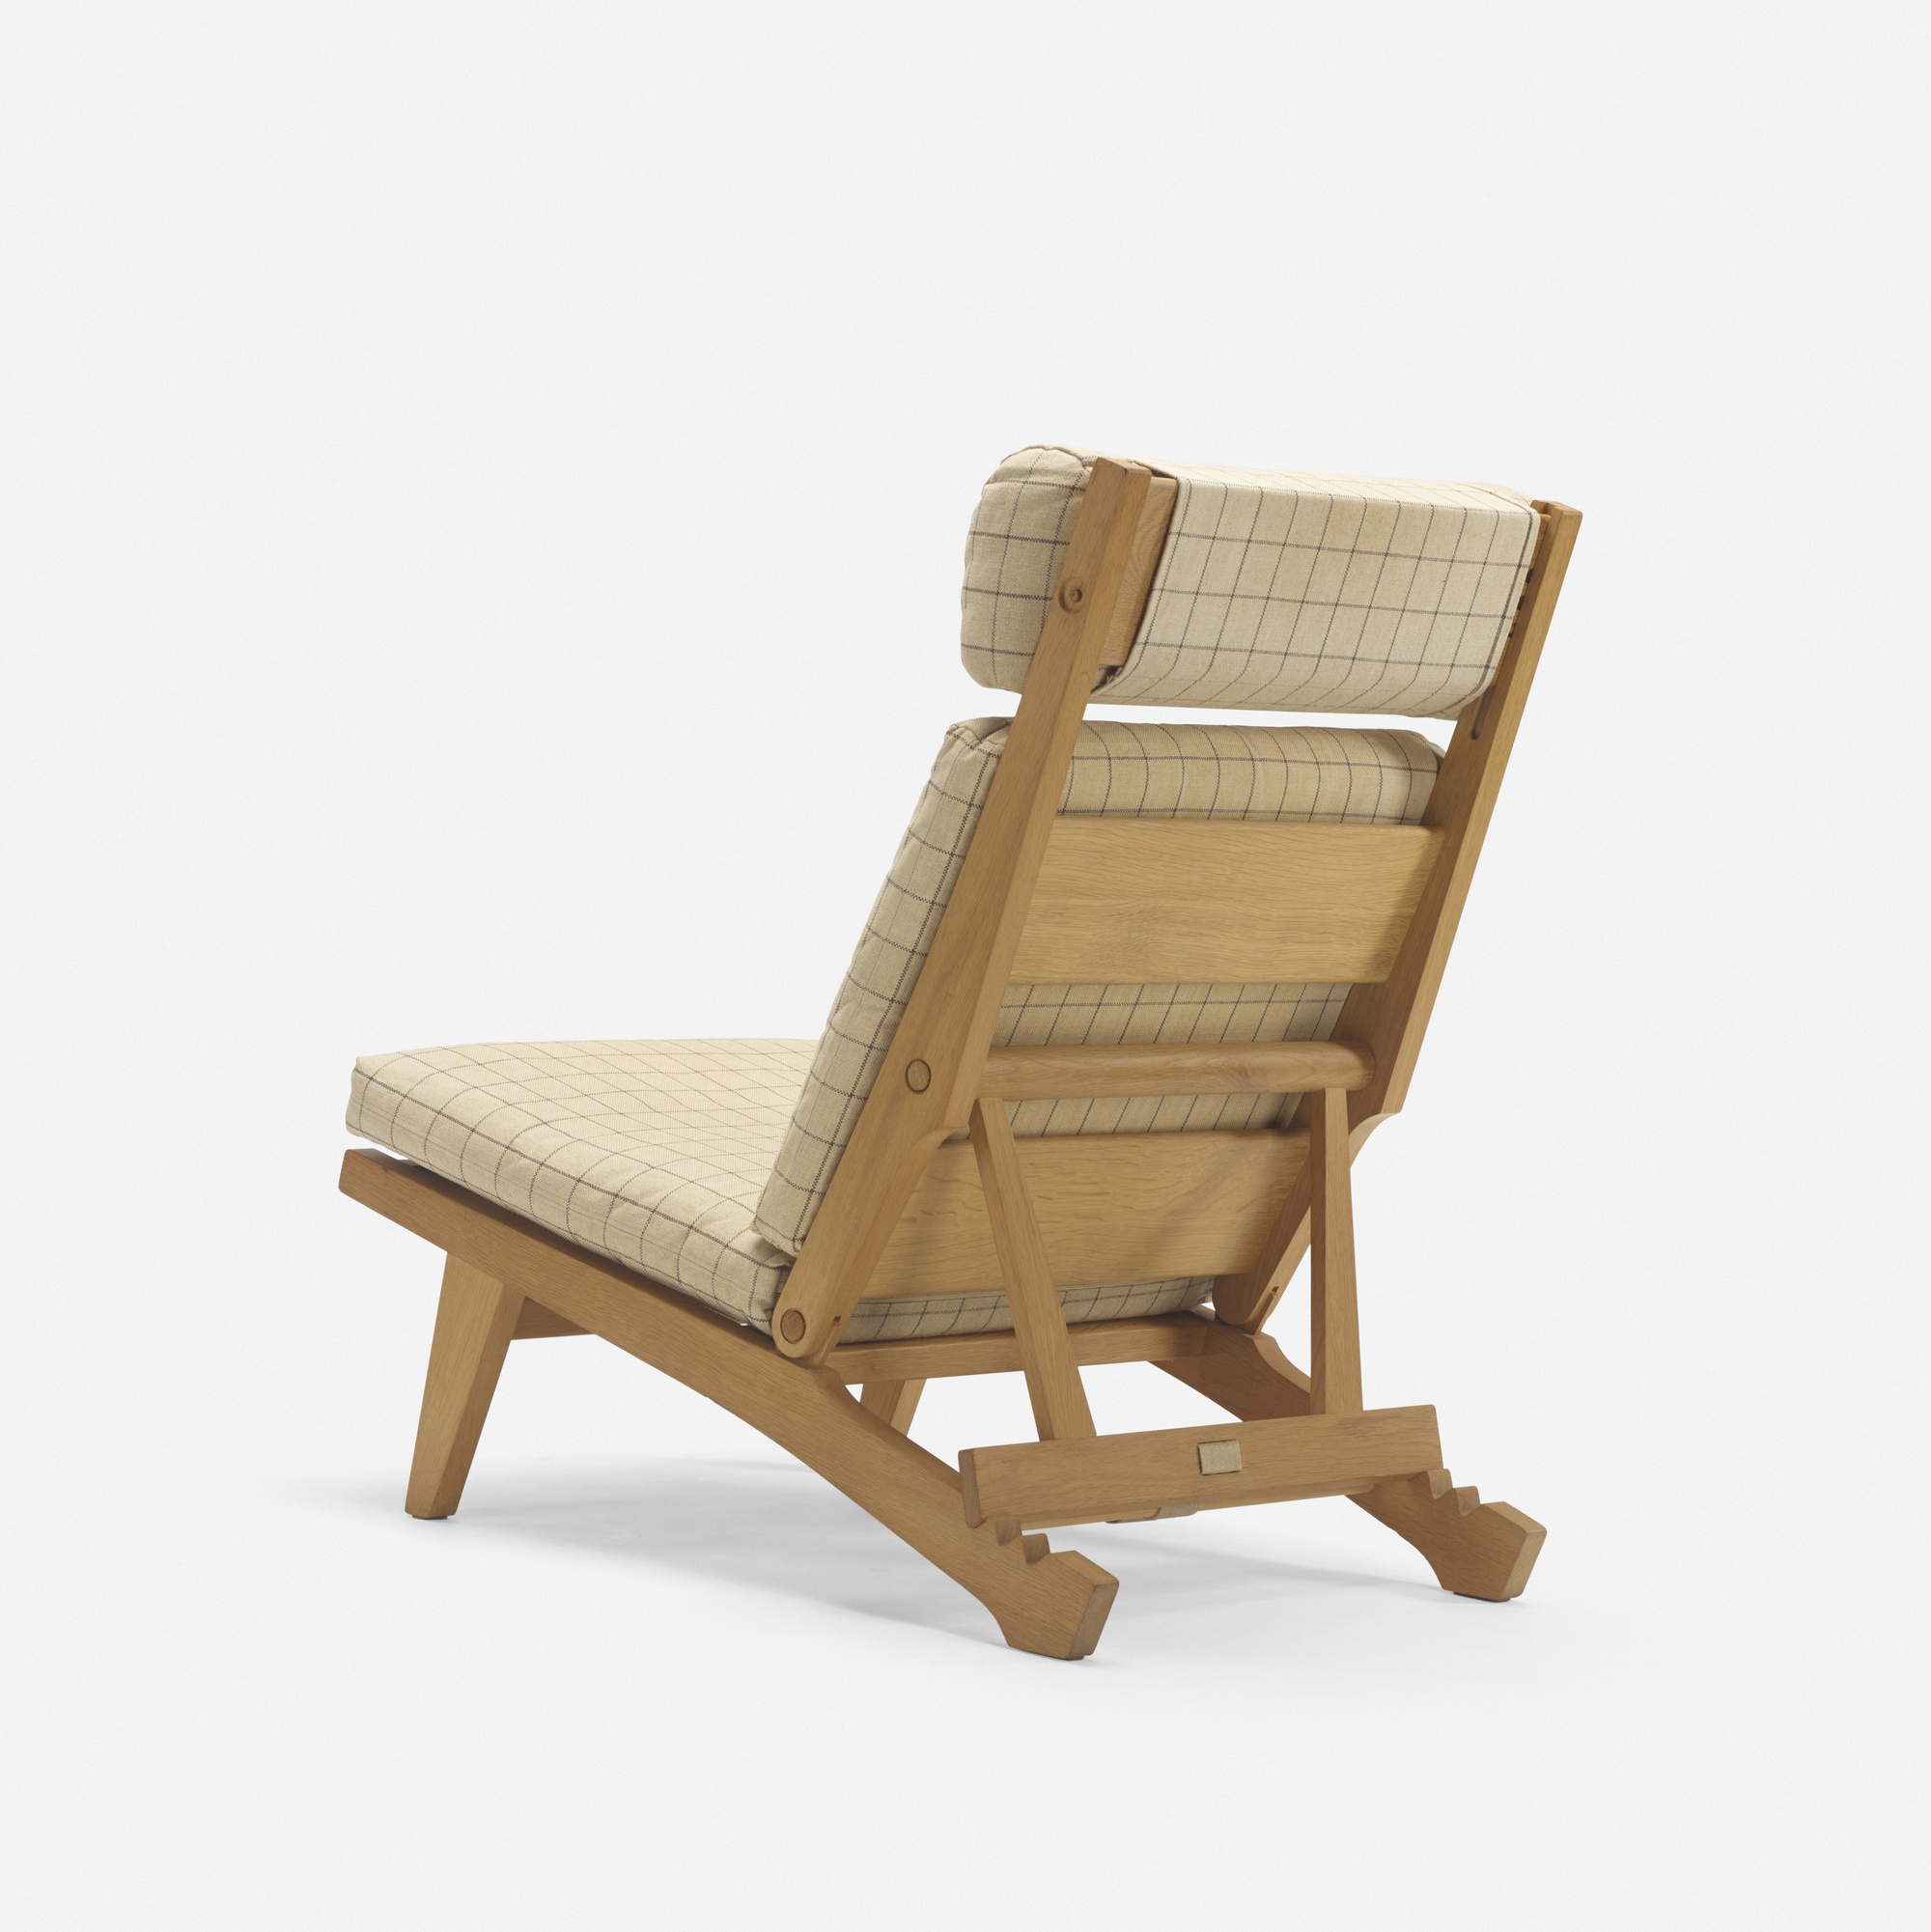 hans wegner chairs design within reach old chair covers hire lounge interior ideas